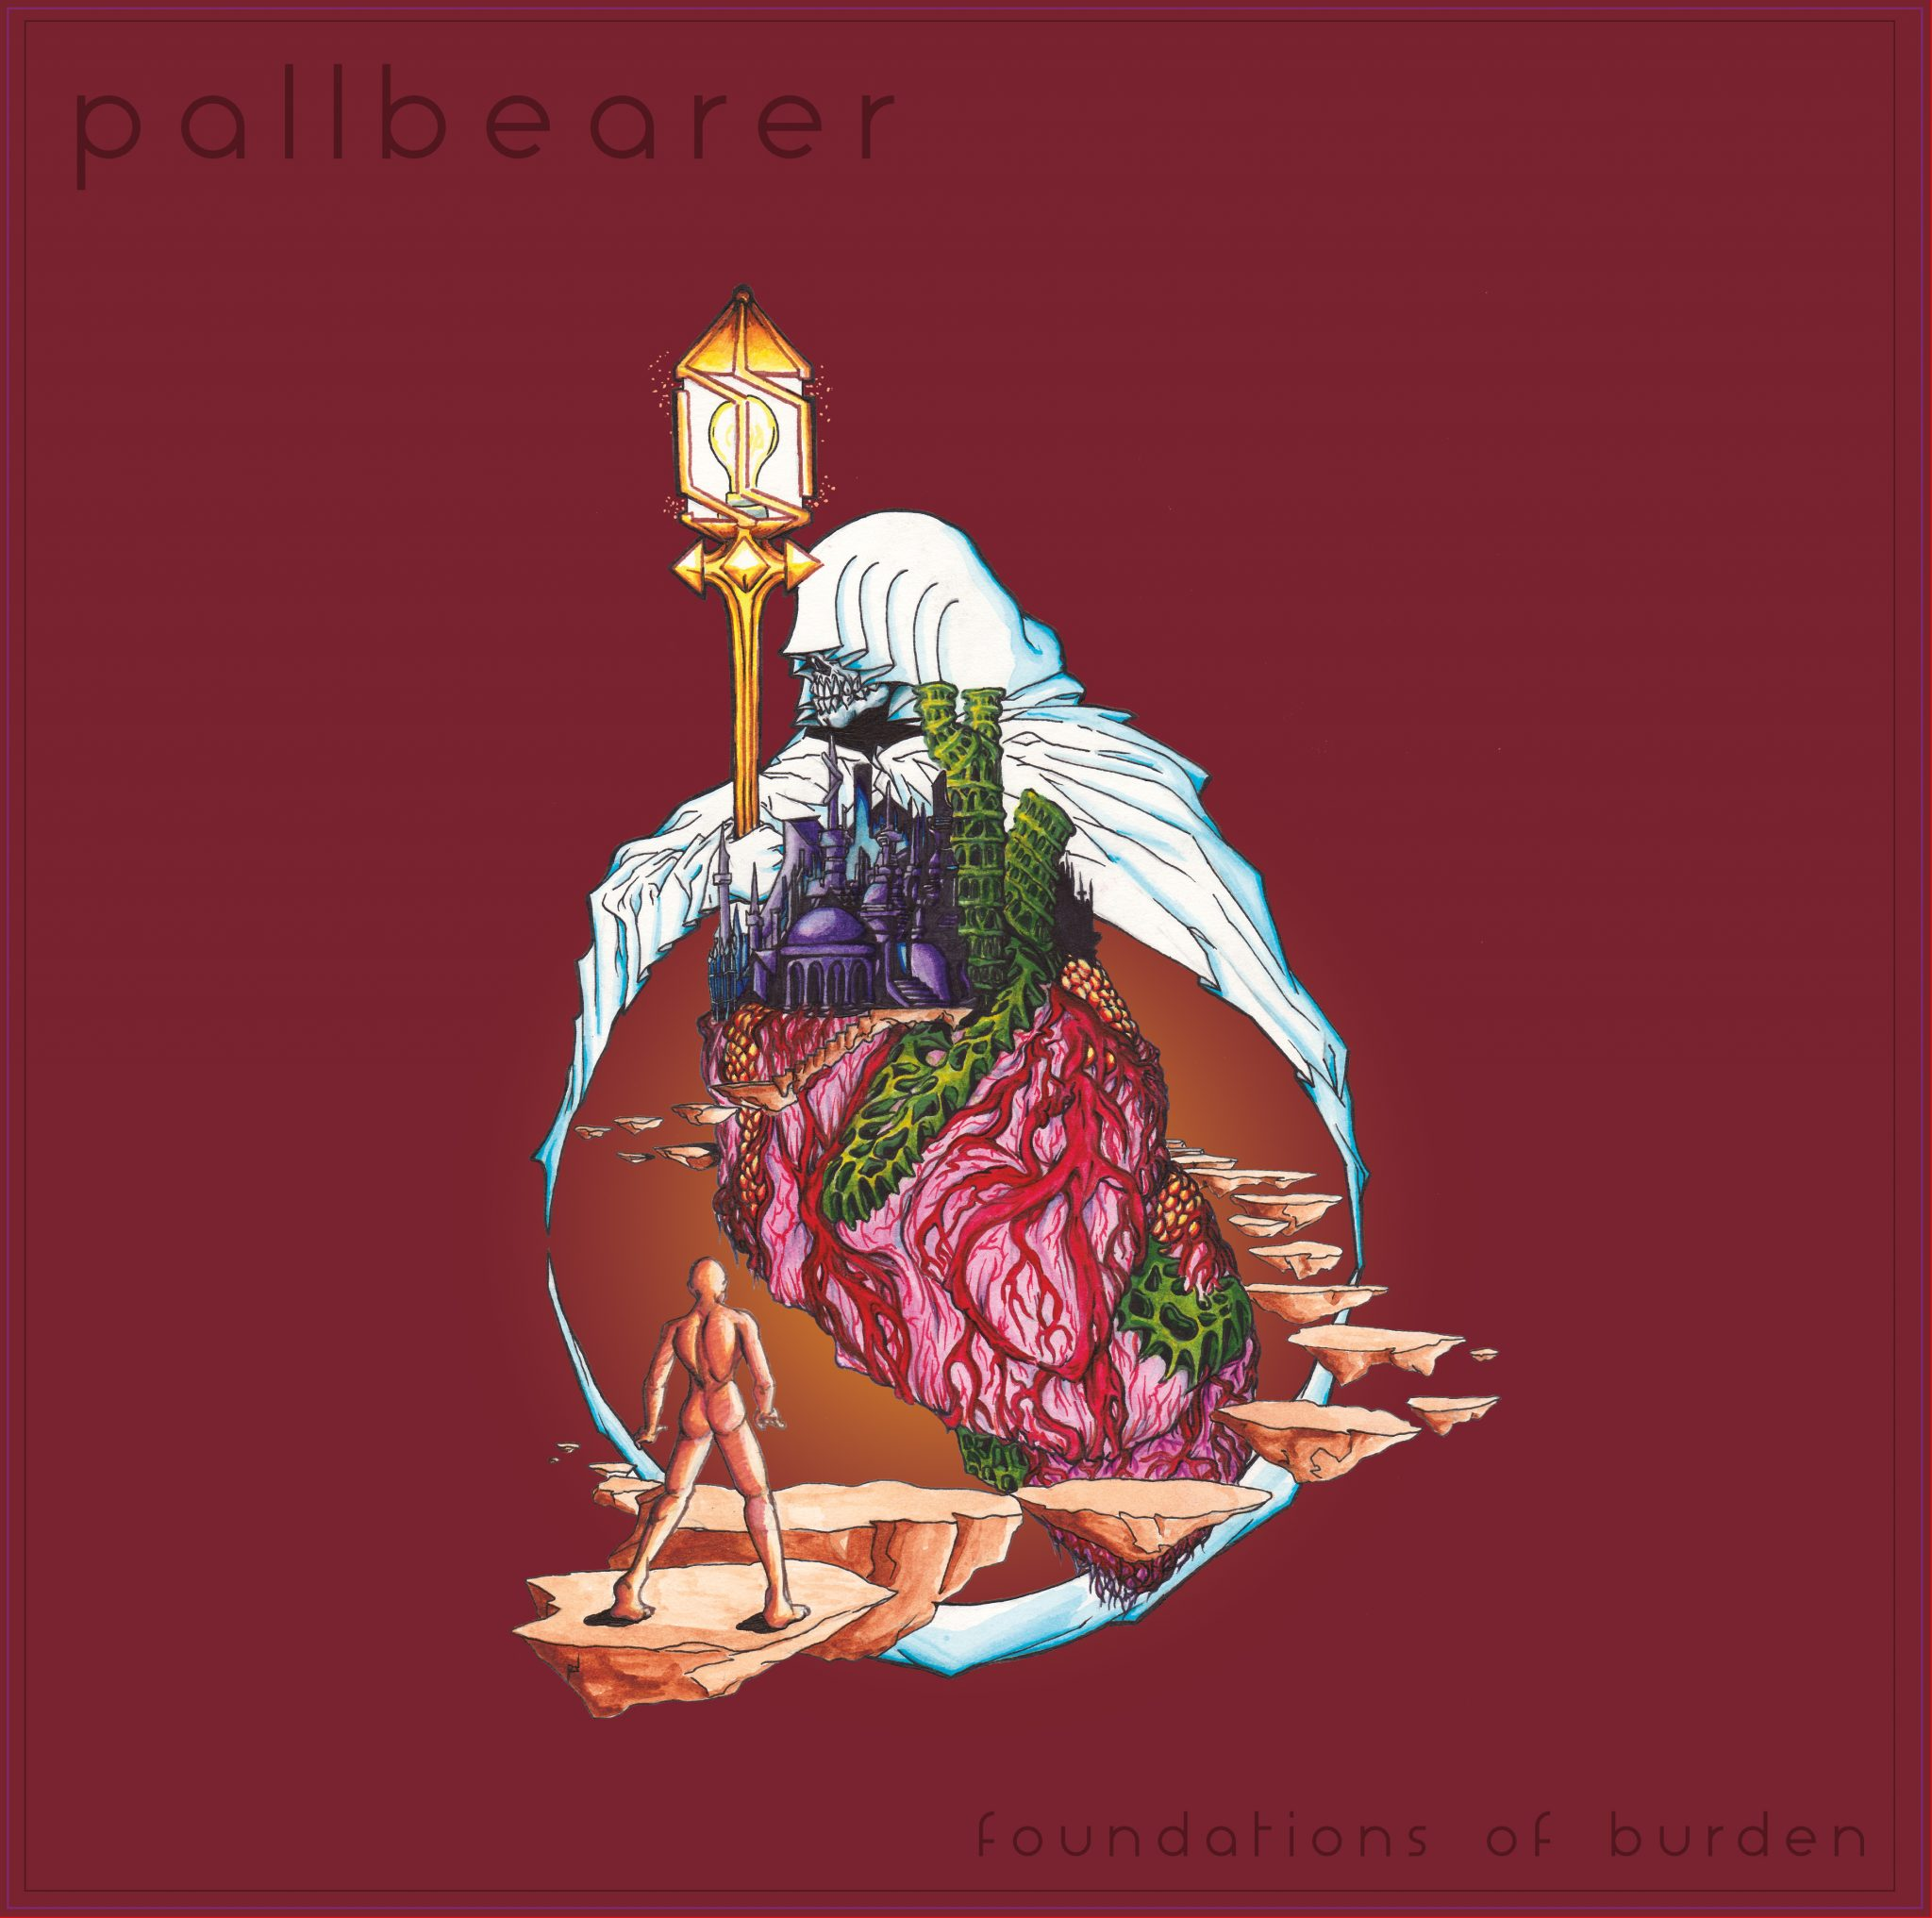 Pallbearer – 'Foundations of Burden'